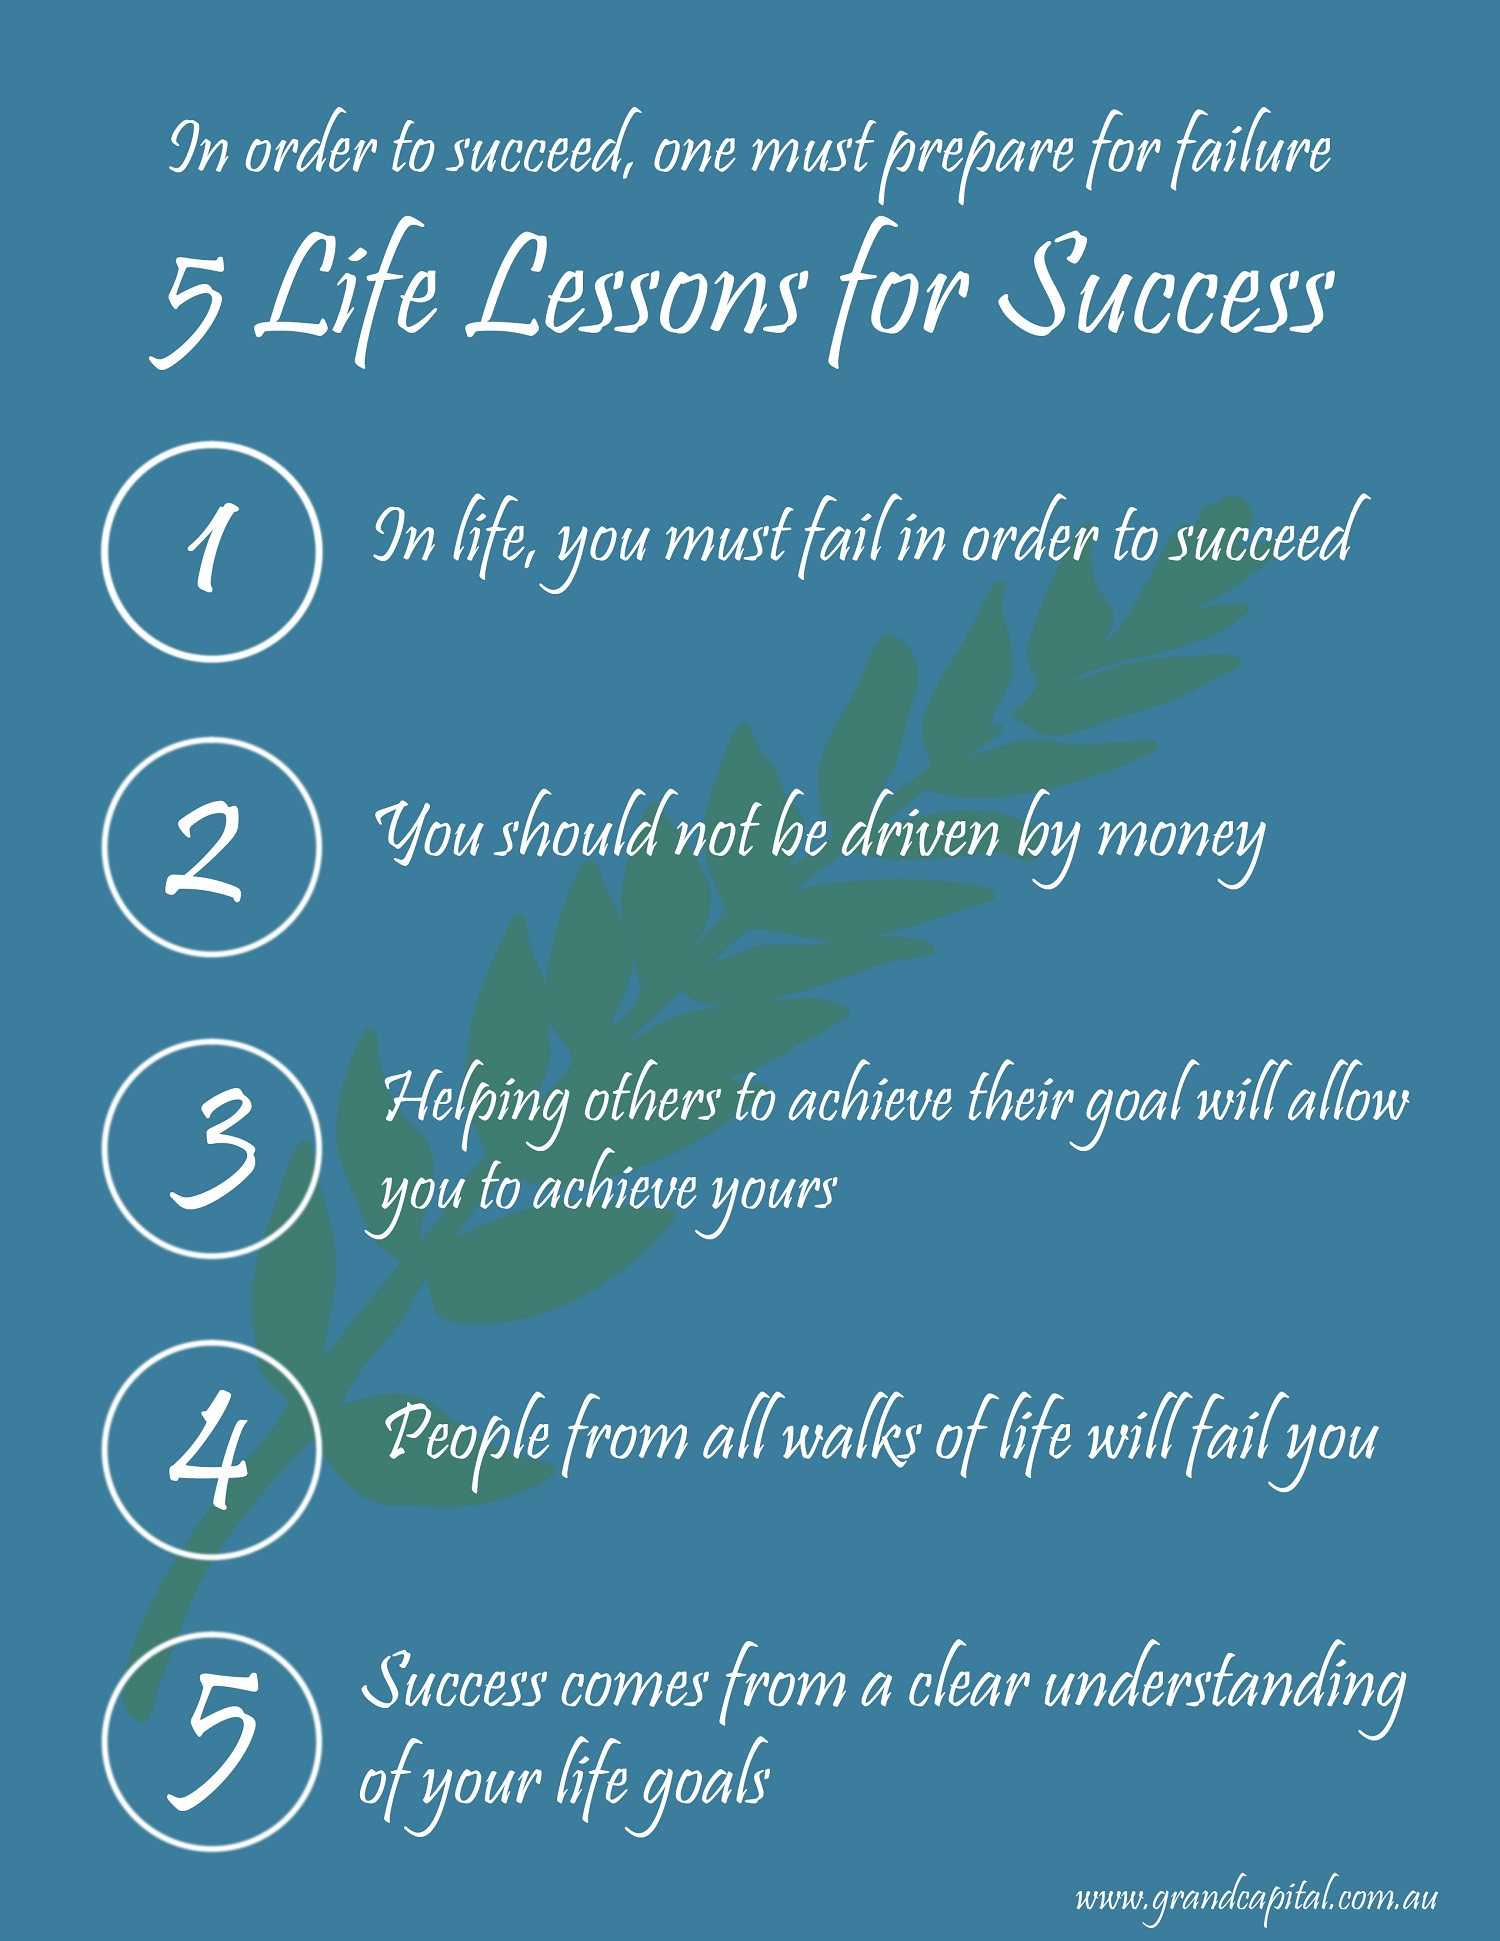 5 Life Lessons for Success